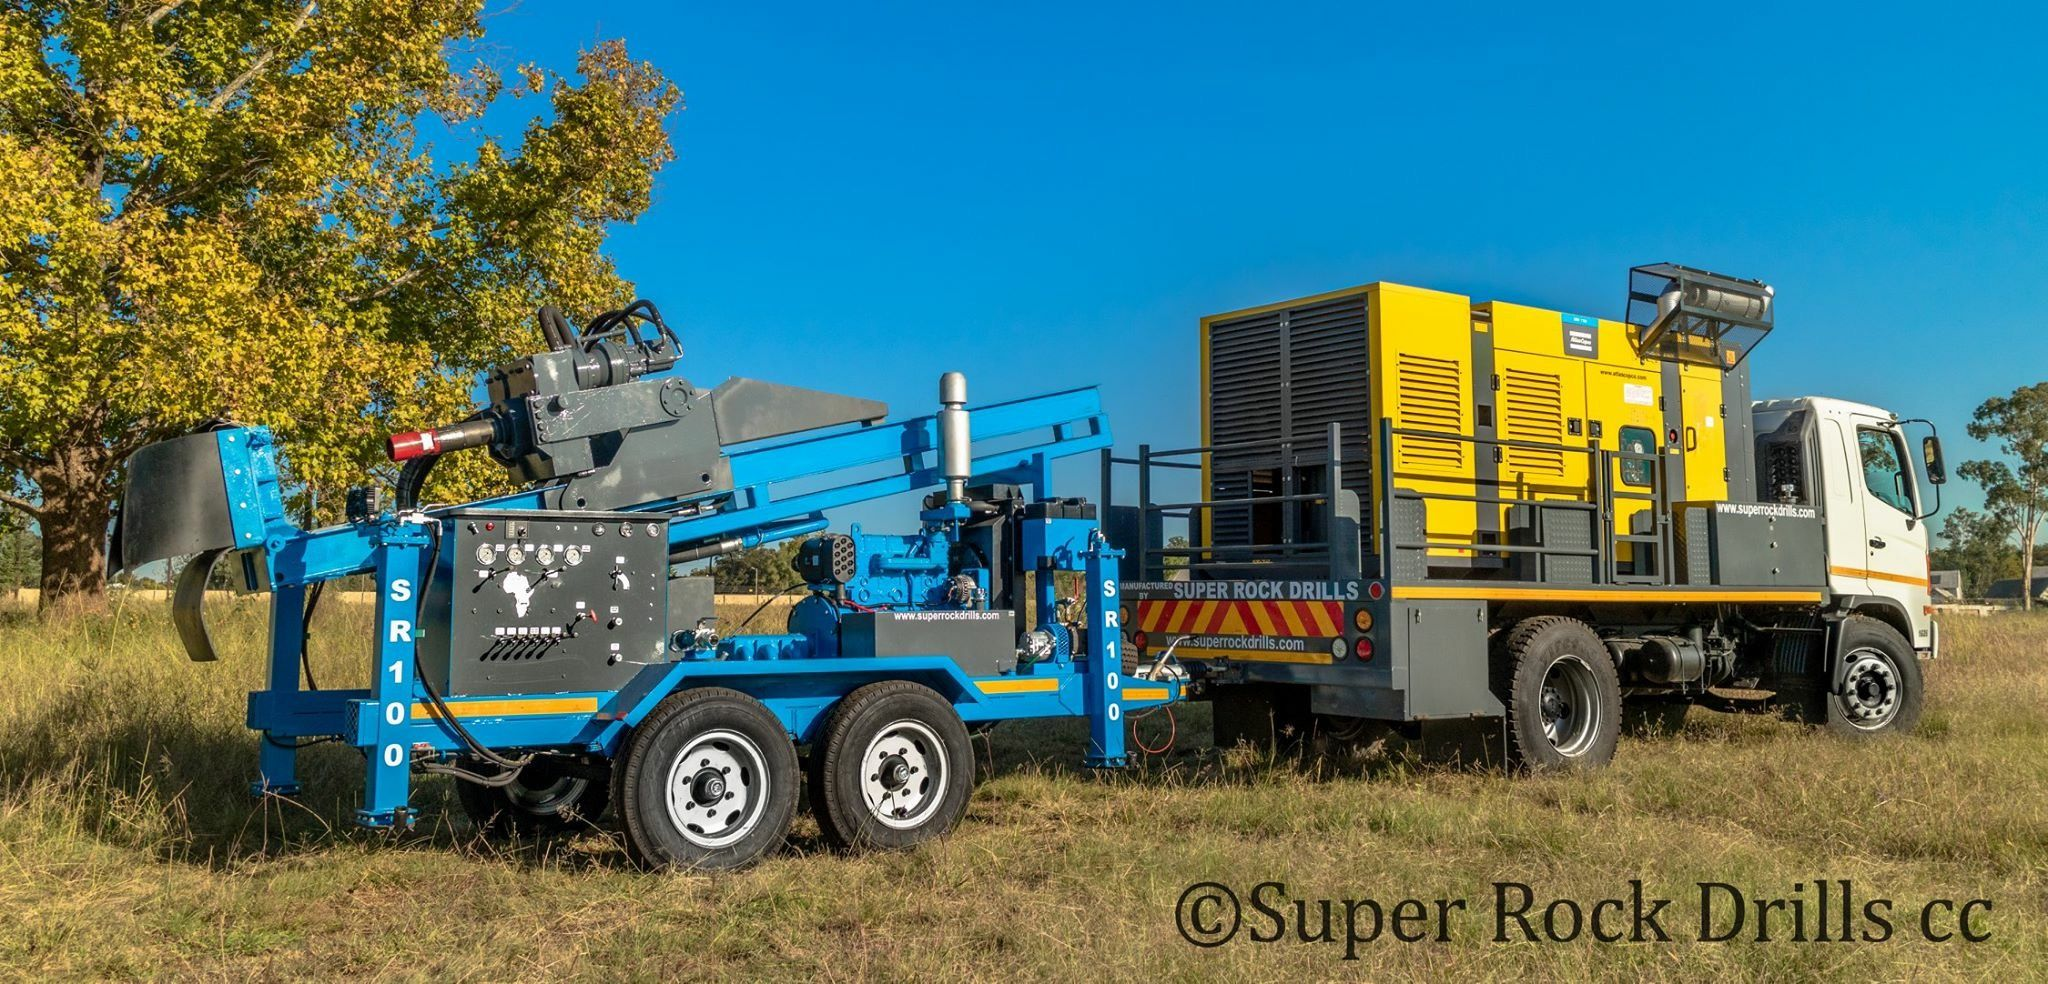 A Super Rock 100 Water Well Drill Rig Manufactured By Super Rock Drills South Africa Drilling Rig Water Well Drilling Well Drilling